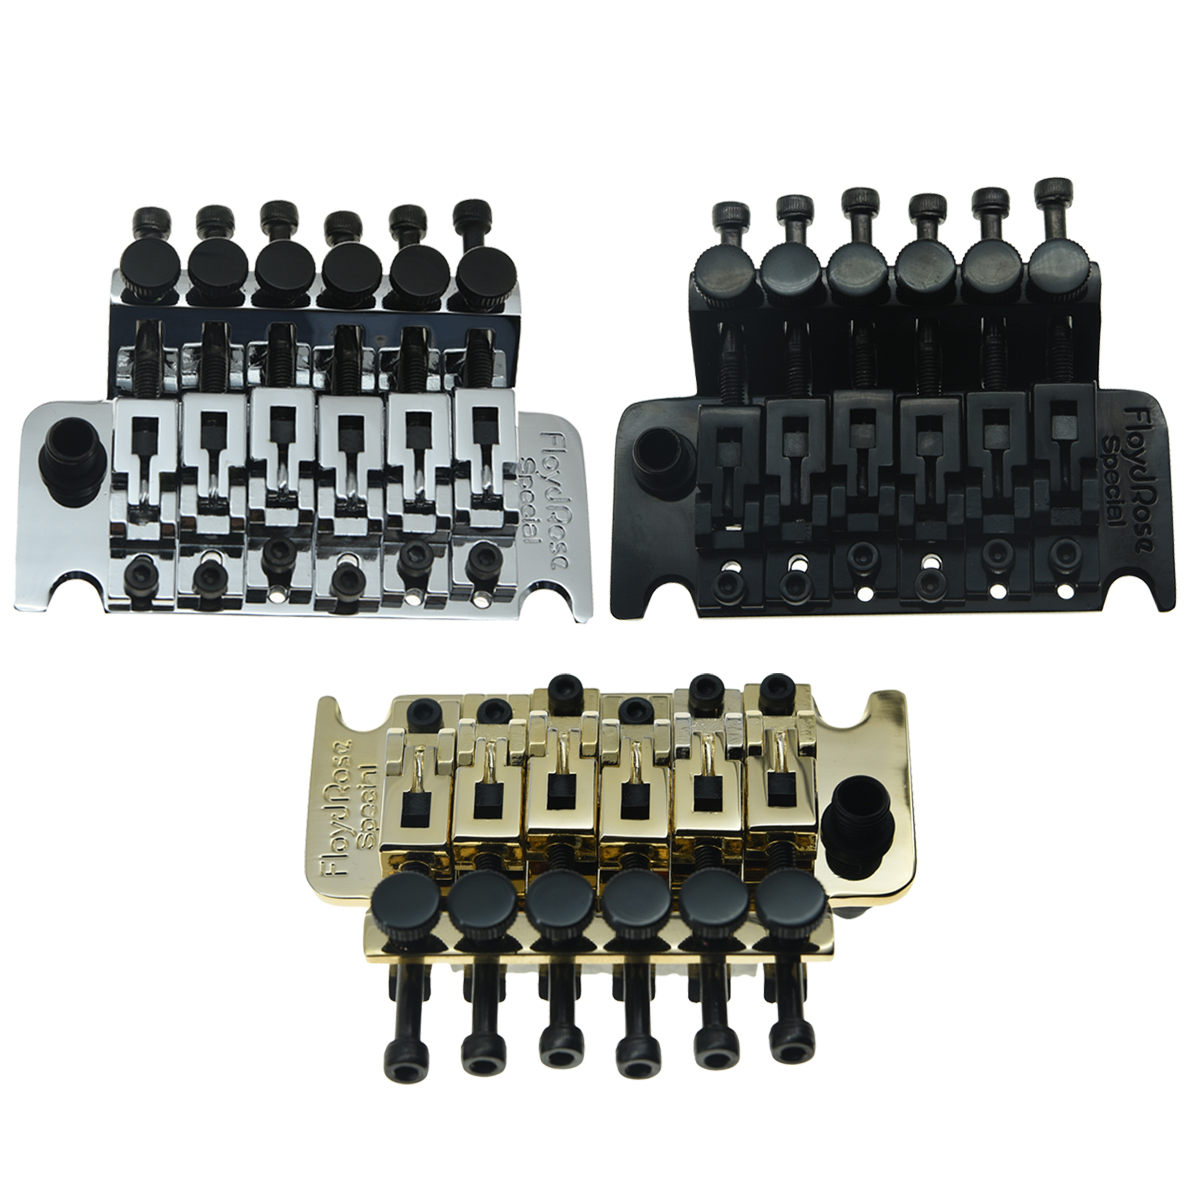 Dopro Genuine Floyd Rose Special Guitar Locking Tremolo Bridge System with R2 or R3 Nut Chrome/Black/Gold genuine original floyd rose 5000 series electric guitar tremolo system bridge frt05000 black nickel cosmo without packaging